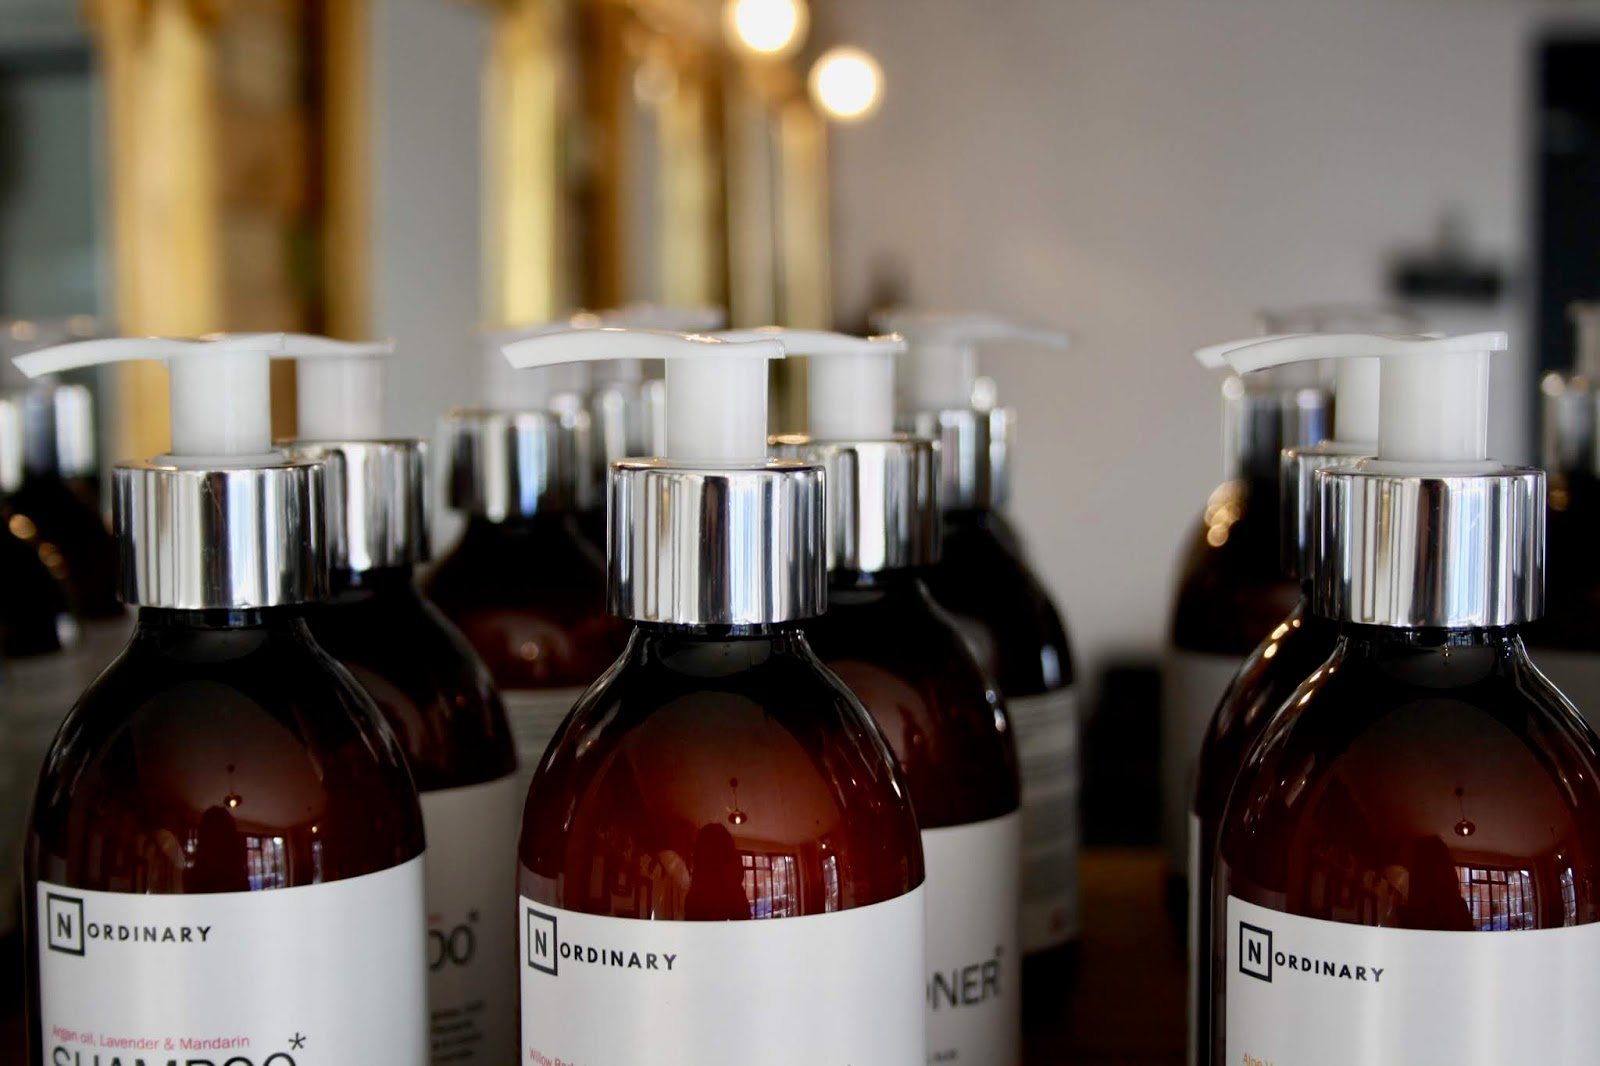 shampoo and conditioner bottles from Gavin Taylor Hair's No Ordinary product range